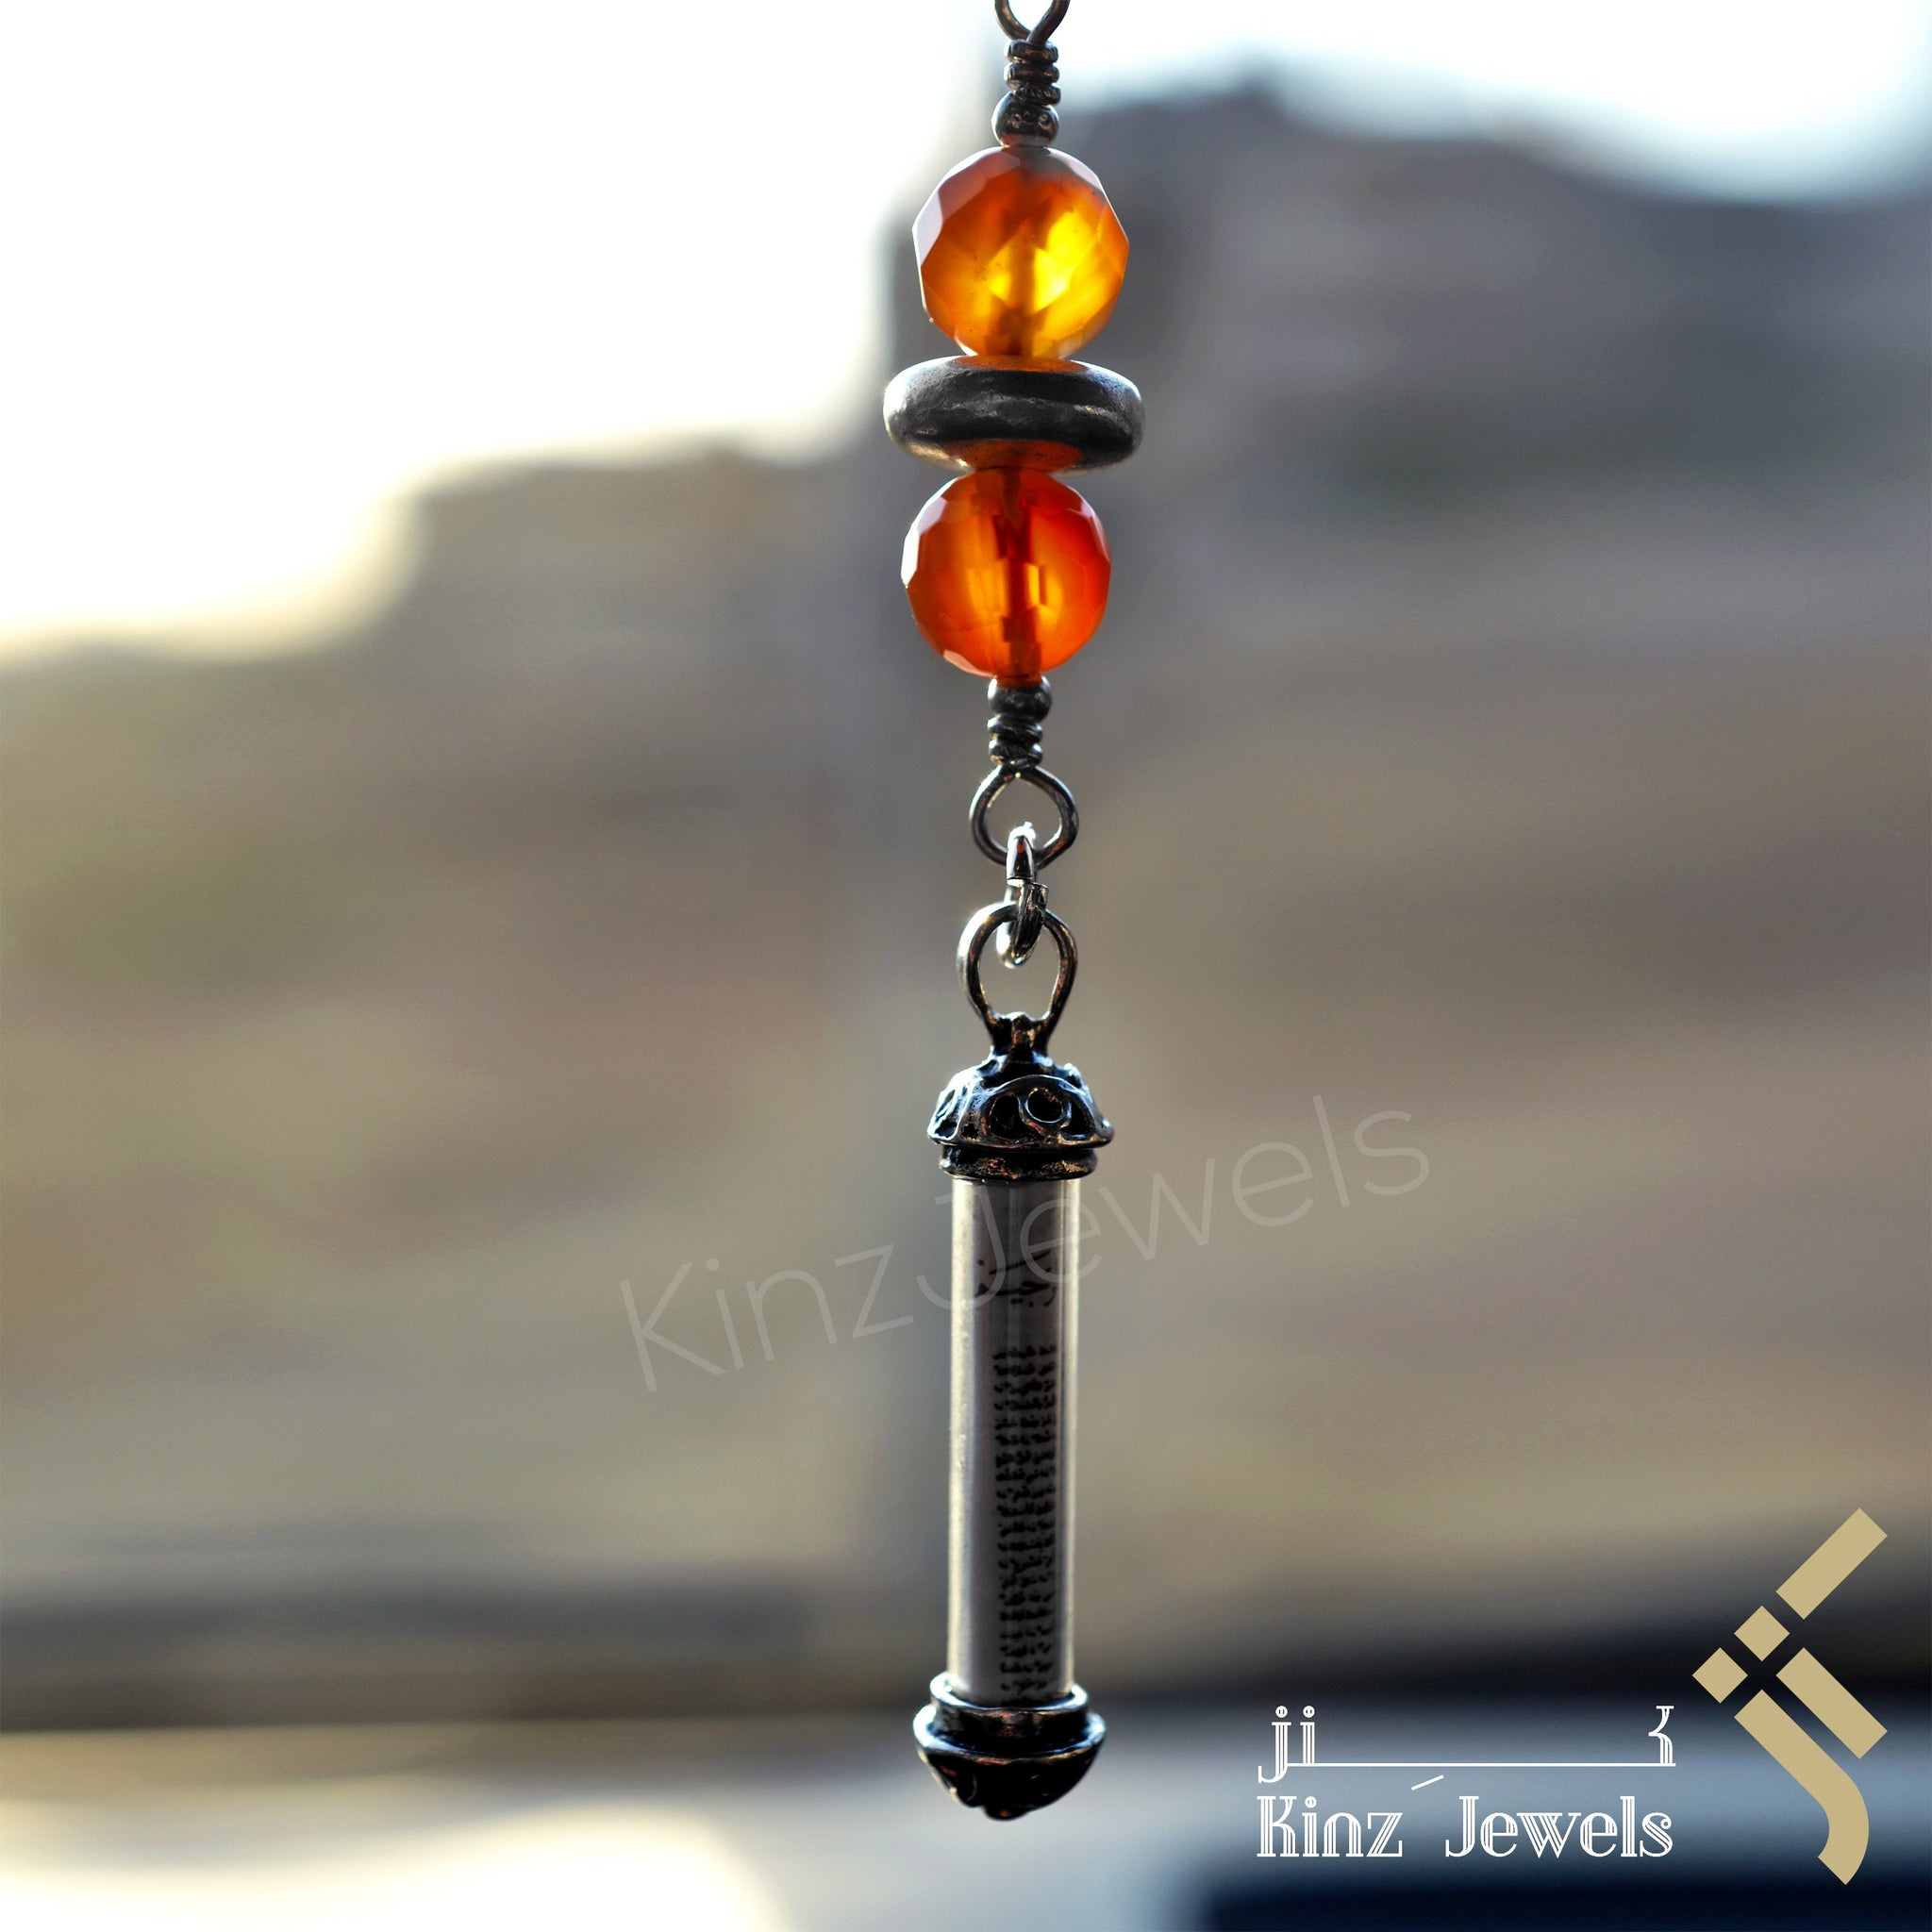 kinzjewels - Kinz Car Mirror Hanging Agate Silver Glass Protective Capsule - The Throne Verse